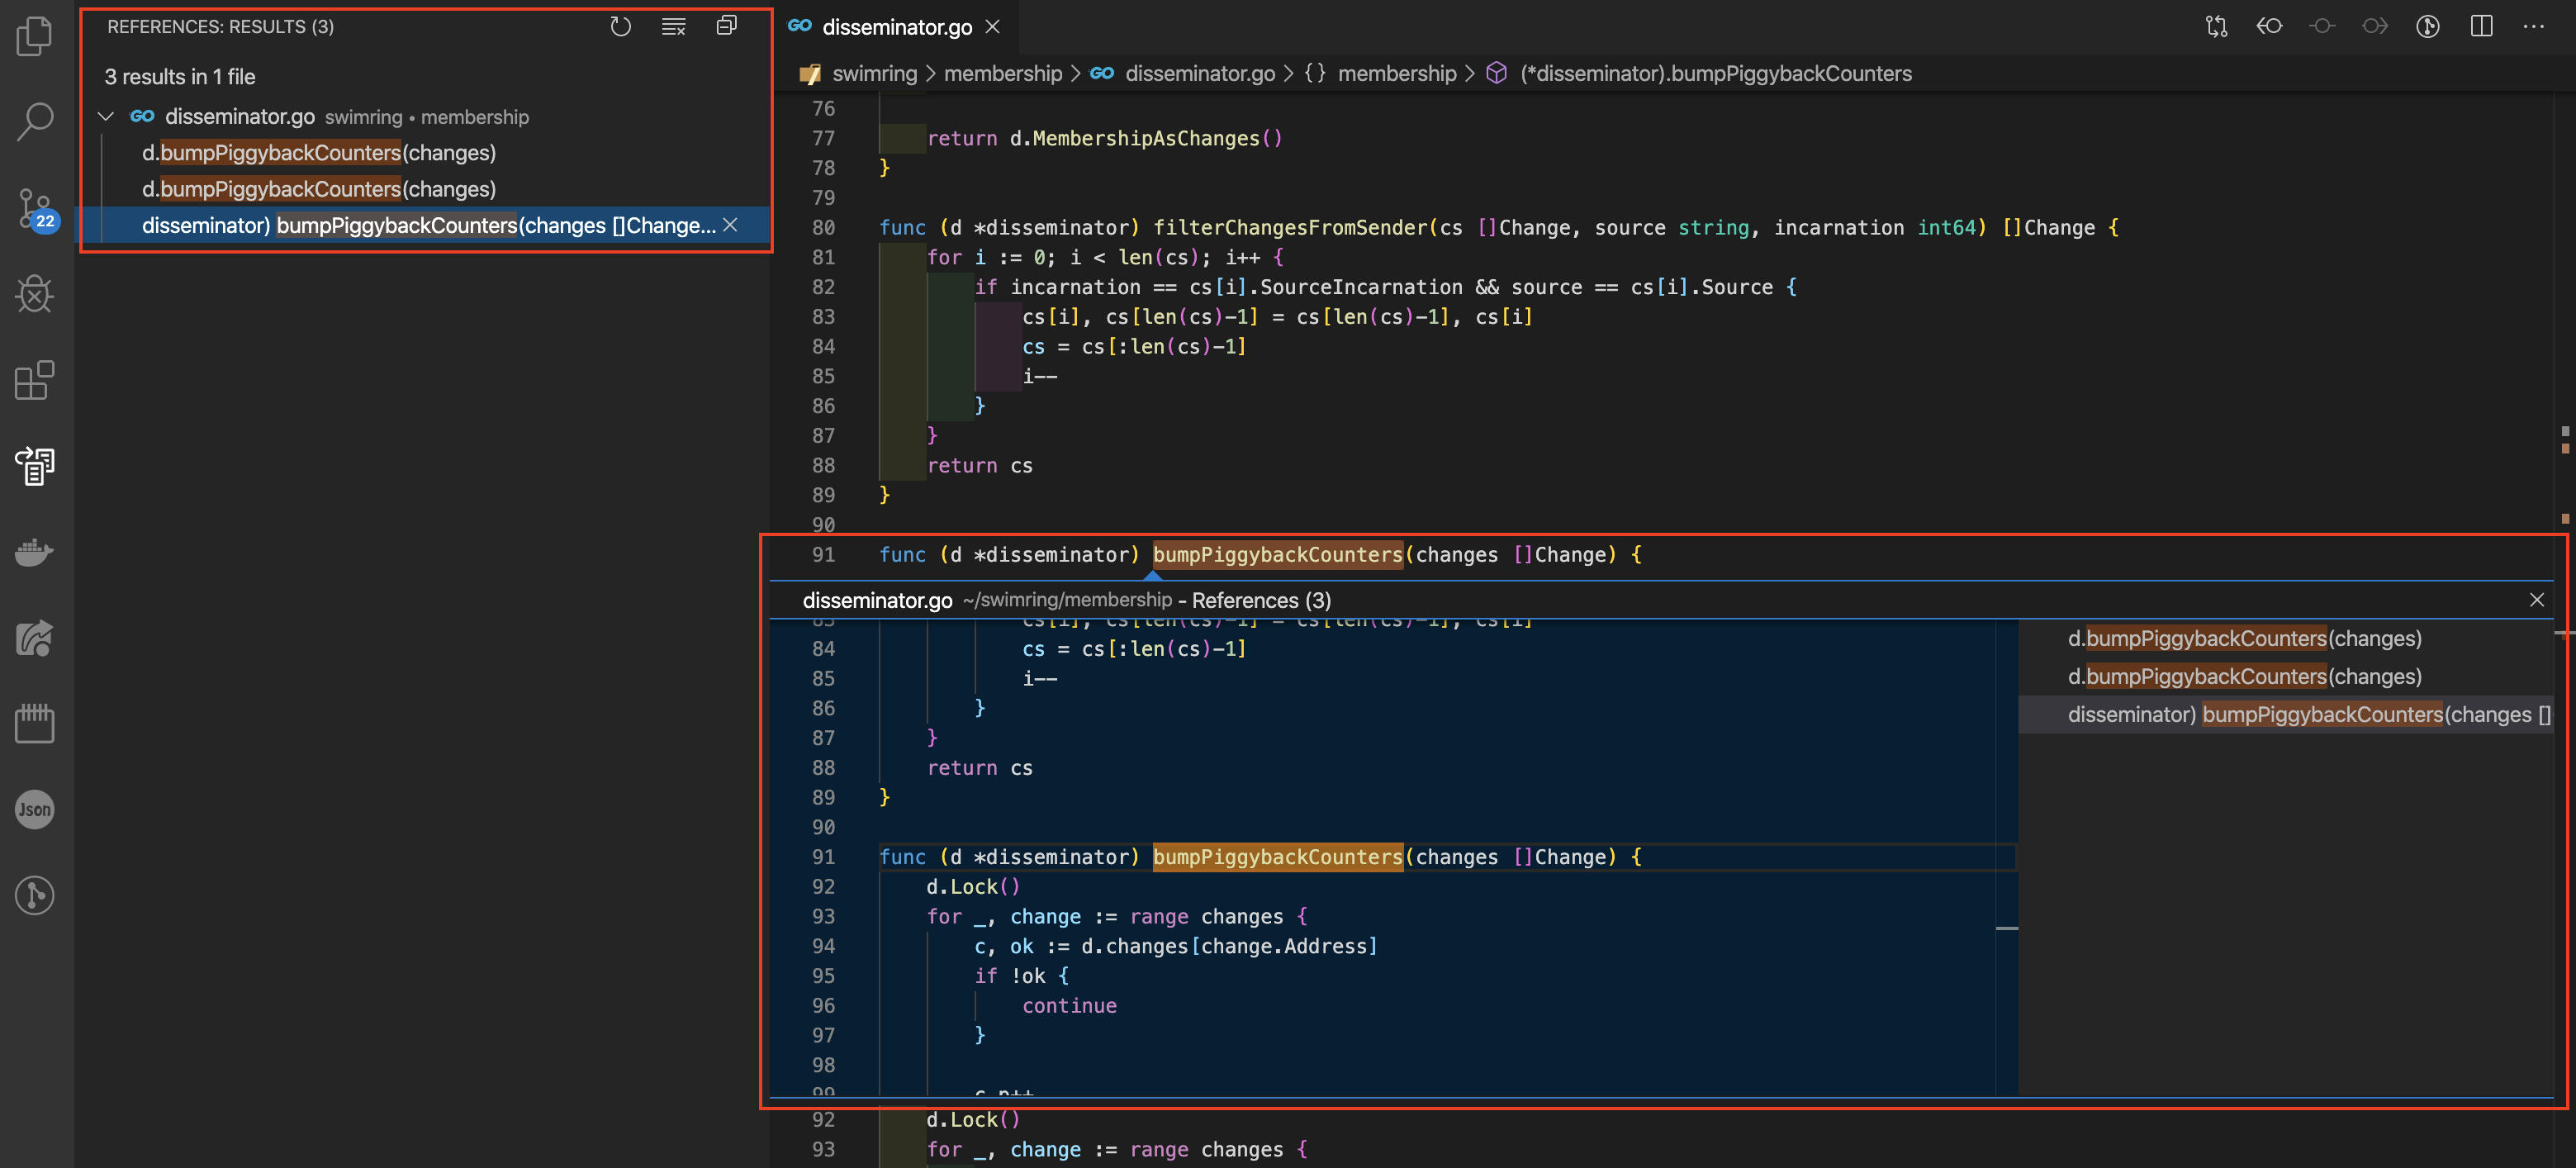 Visual Studio CodeとIntelliJ IDEAを比較してみた